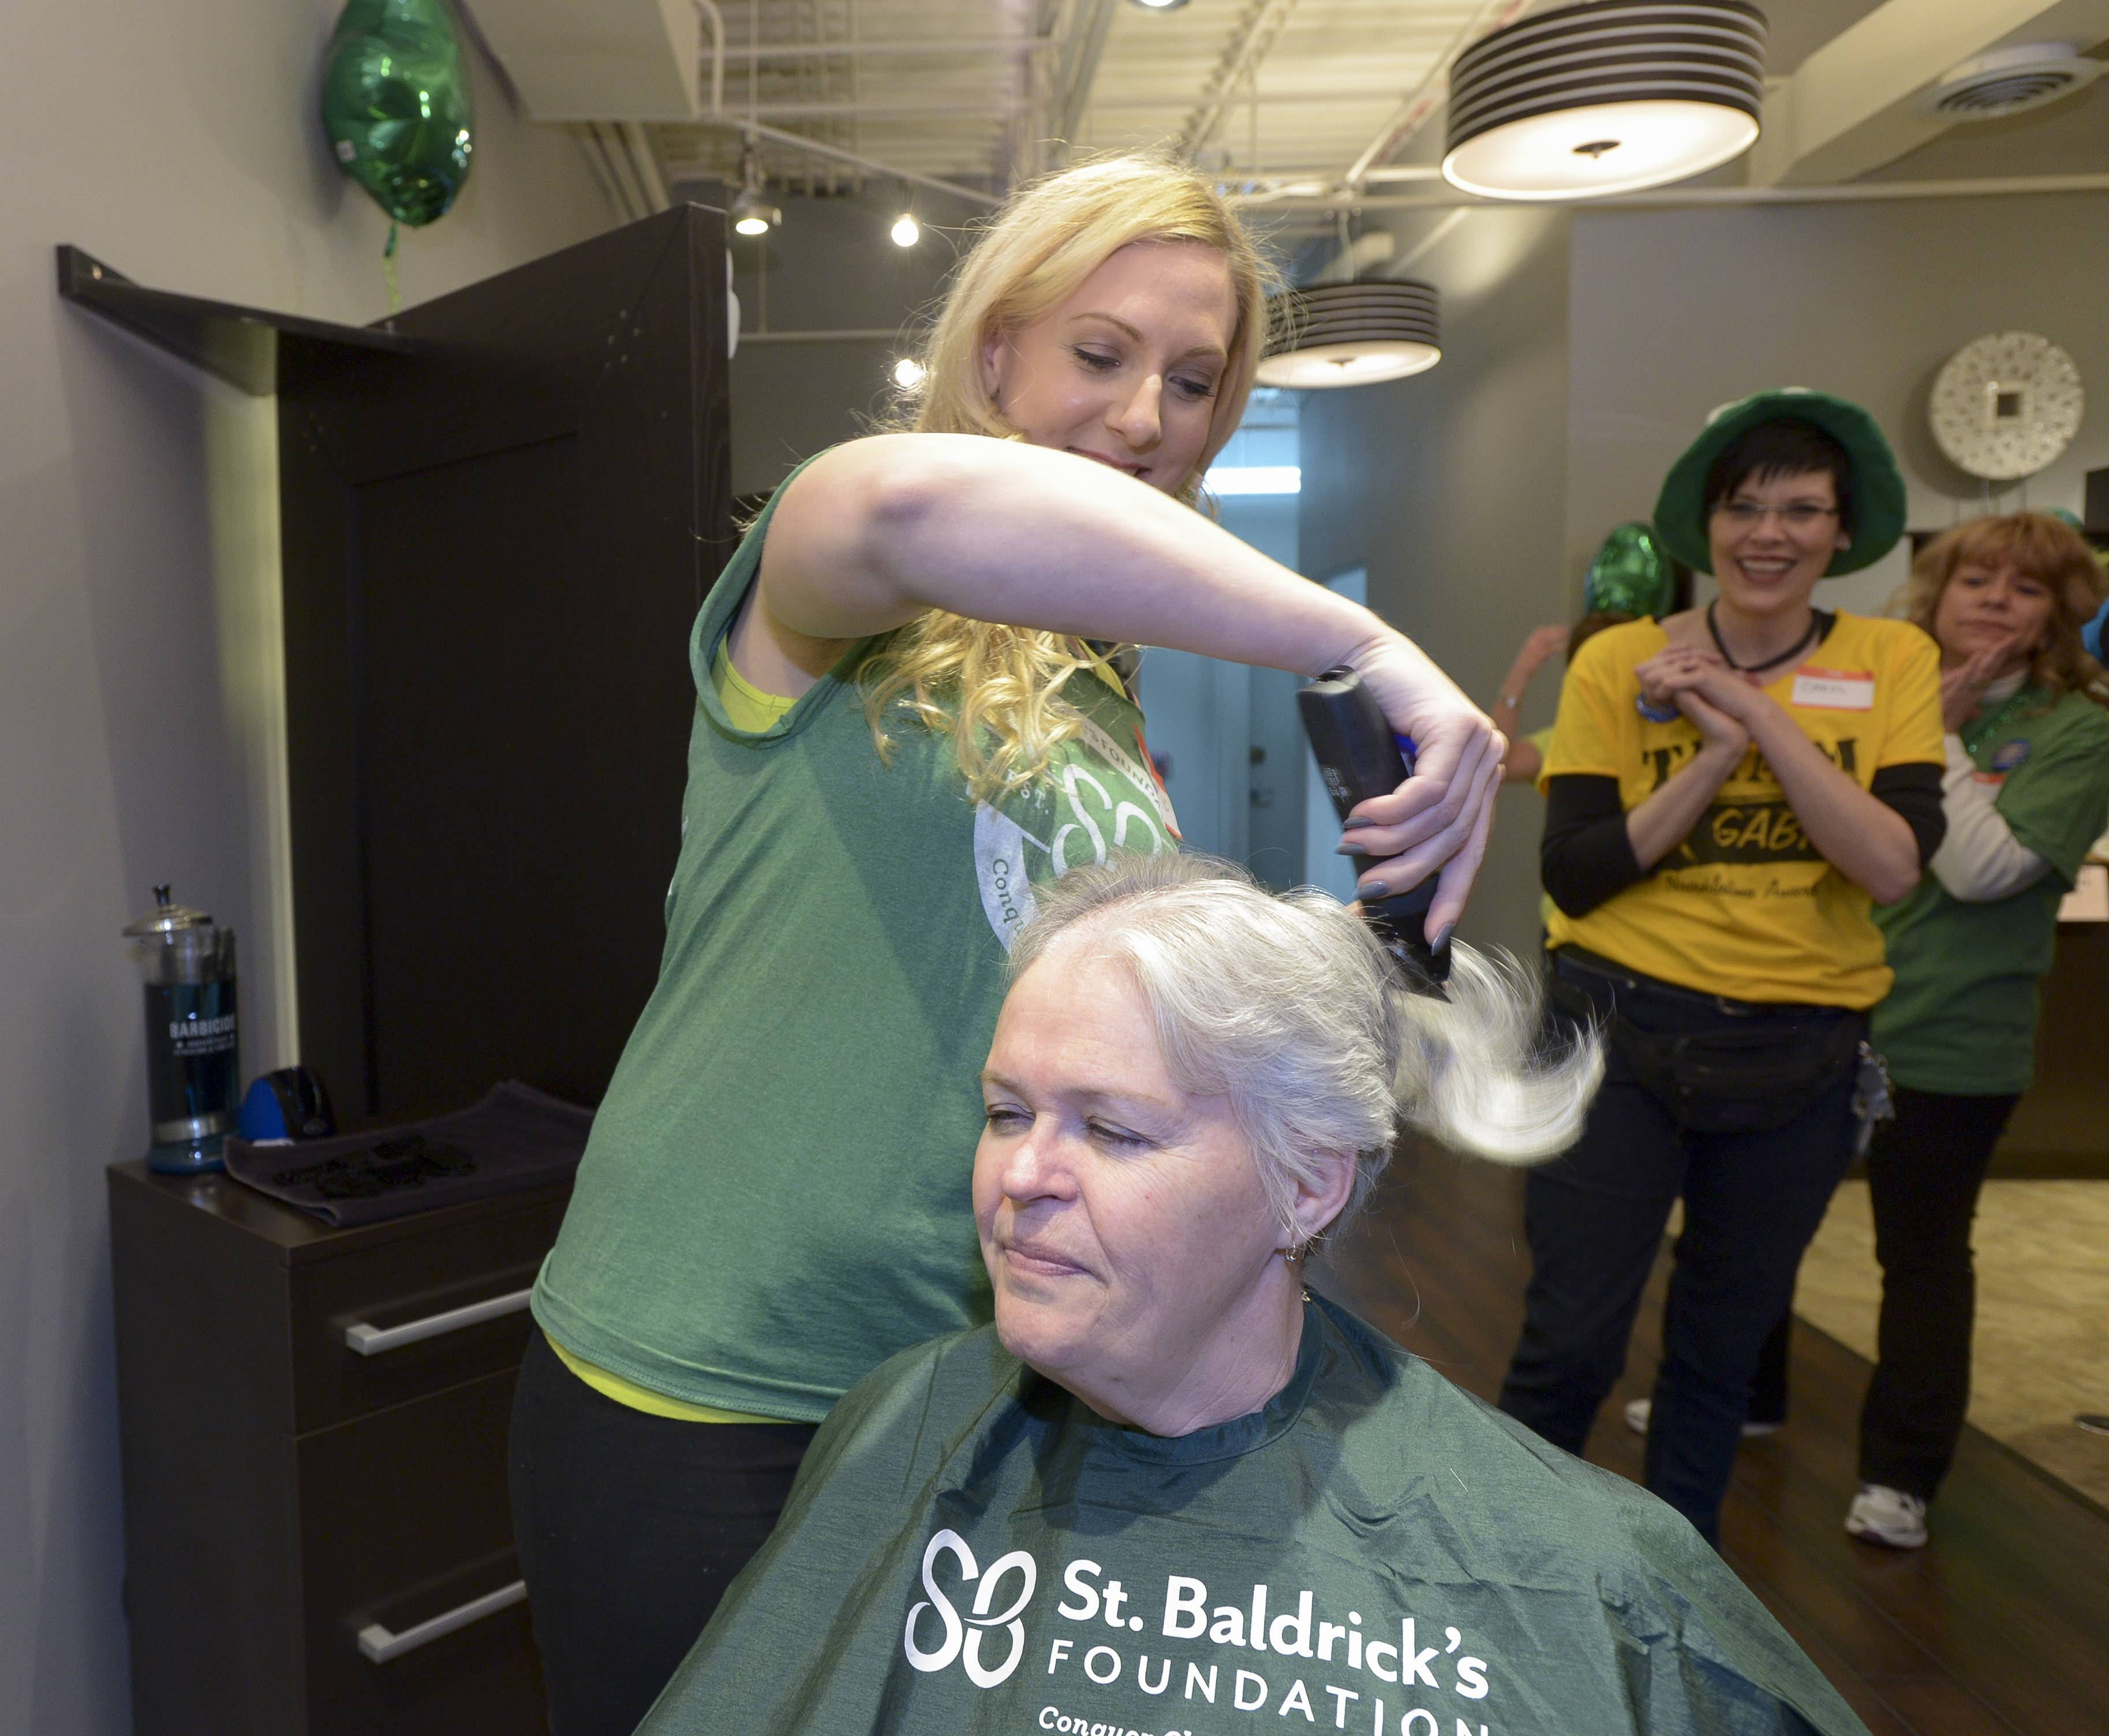 Maureen Maguire of Cary has her head shaved by Devin Dalakouras while participating in the St. Baldrick's head shaving event Sunday at Rue 62 Salon/1st Place Sports Bar & Grill in Hoffman Estates. Maguire raised $1,270 for the St. Baldrick's Foundation.